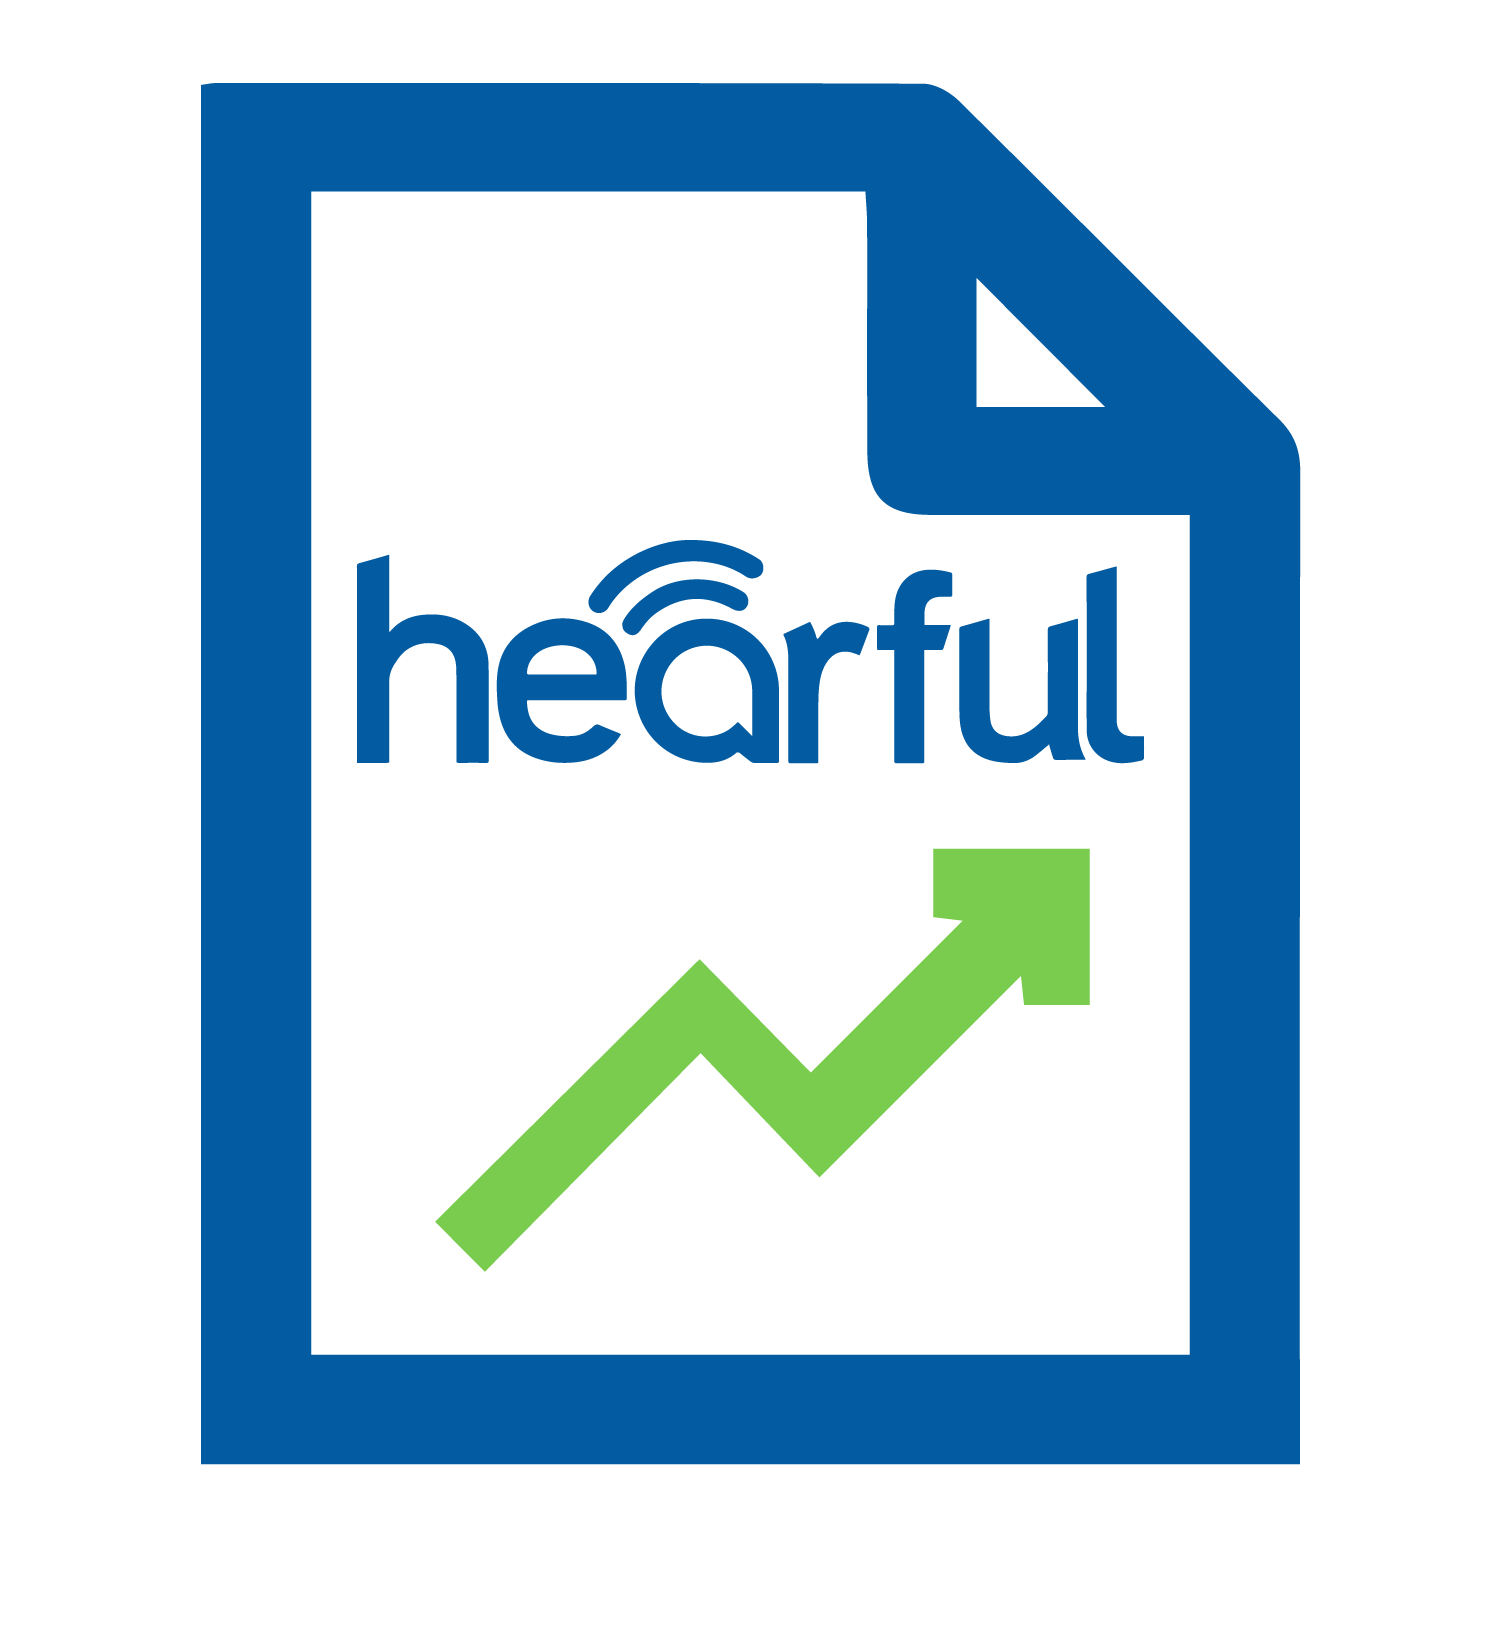 hearful-product-insights-report